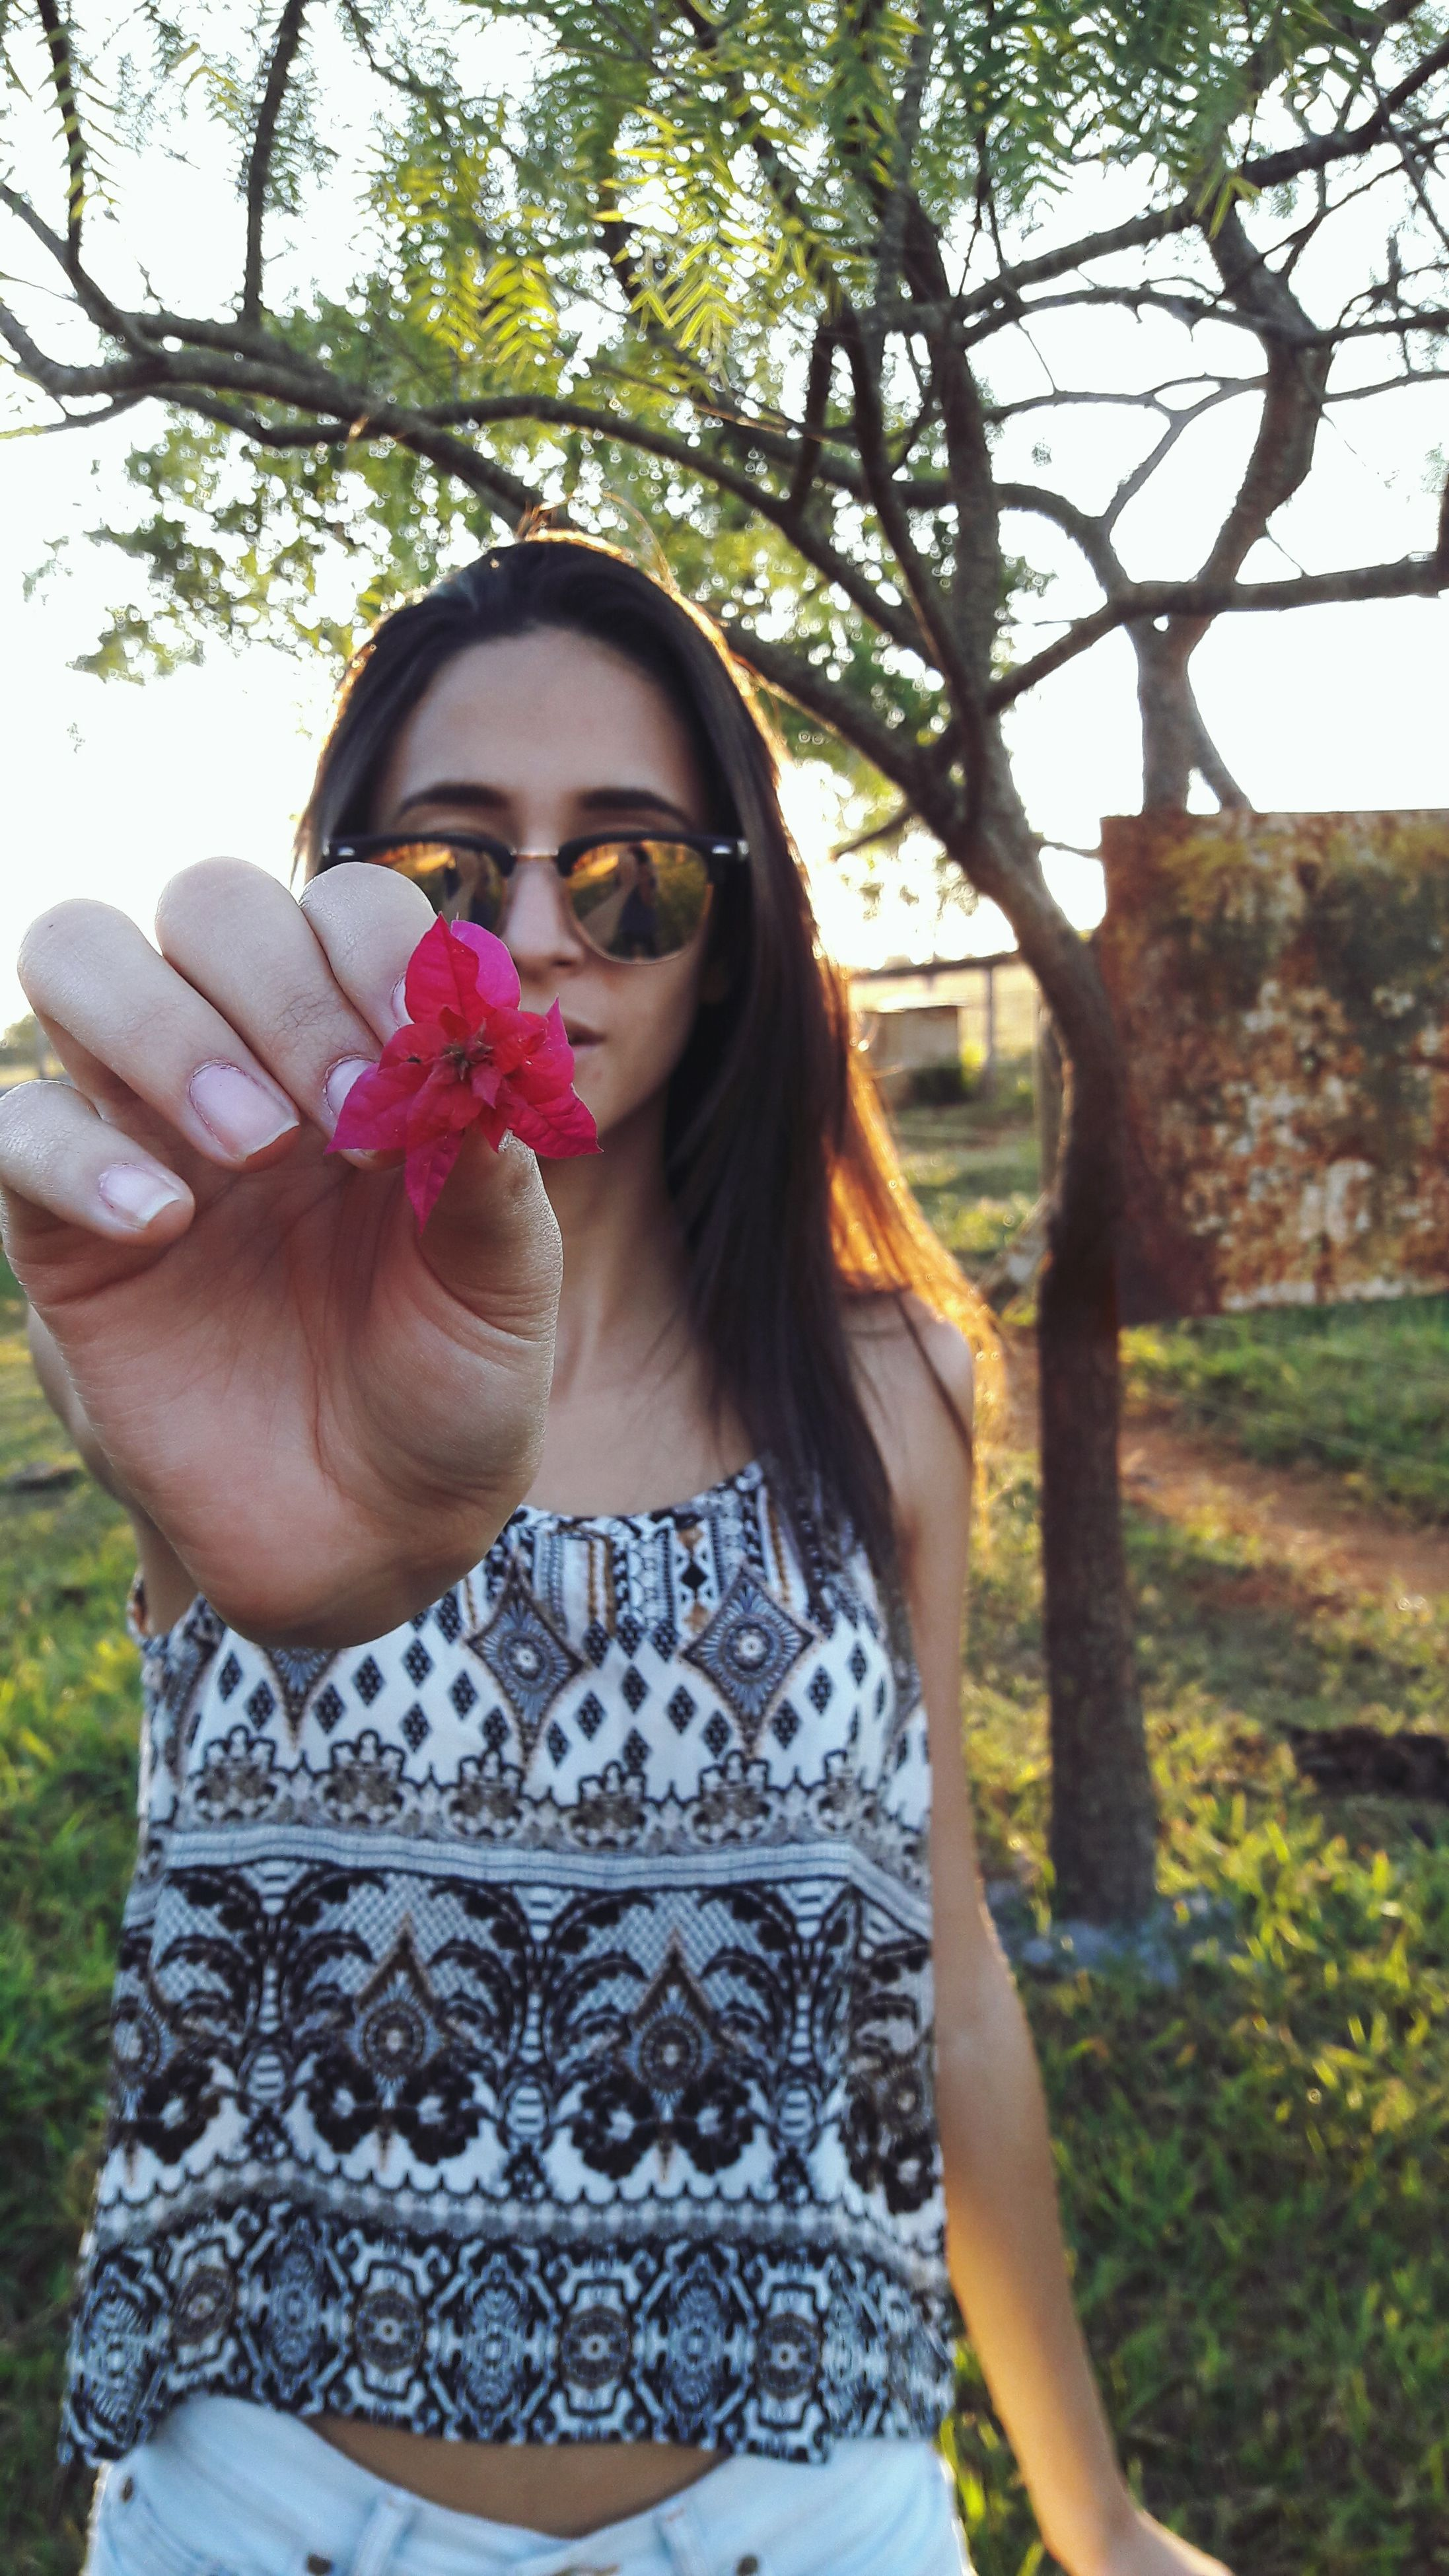 lifestyles, person, young adult, leisure activity, holding, front view, portrait, casual clothing, young women, looking at camera, flower, tree, freshness, standing, sunglasses, smiling, headshot, day